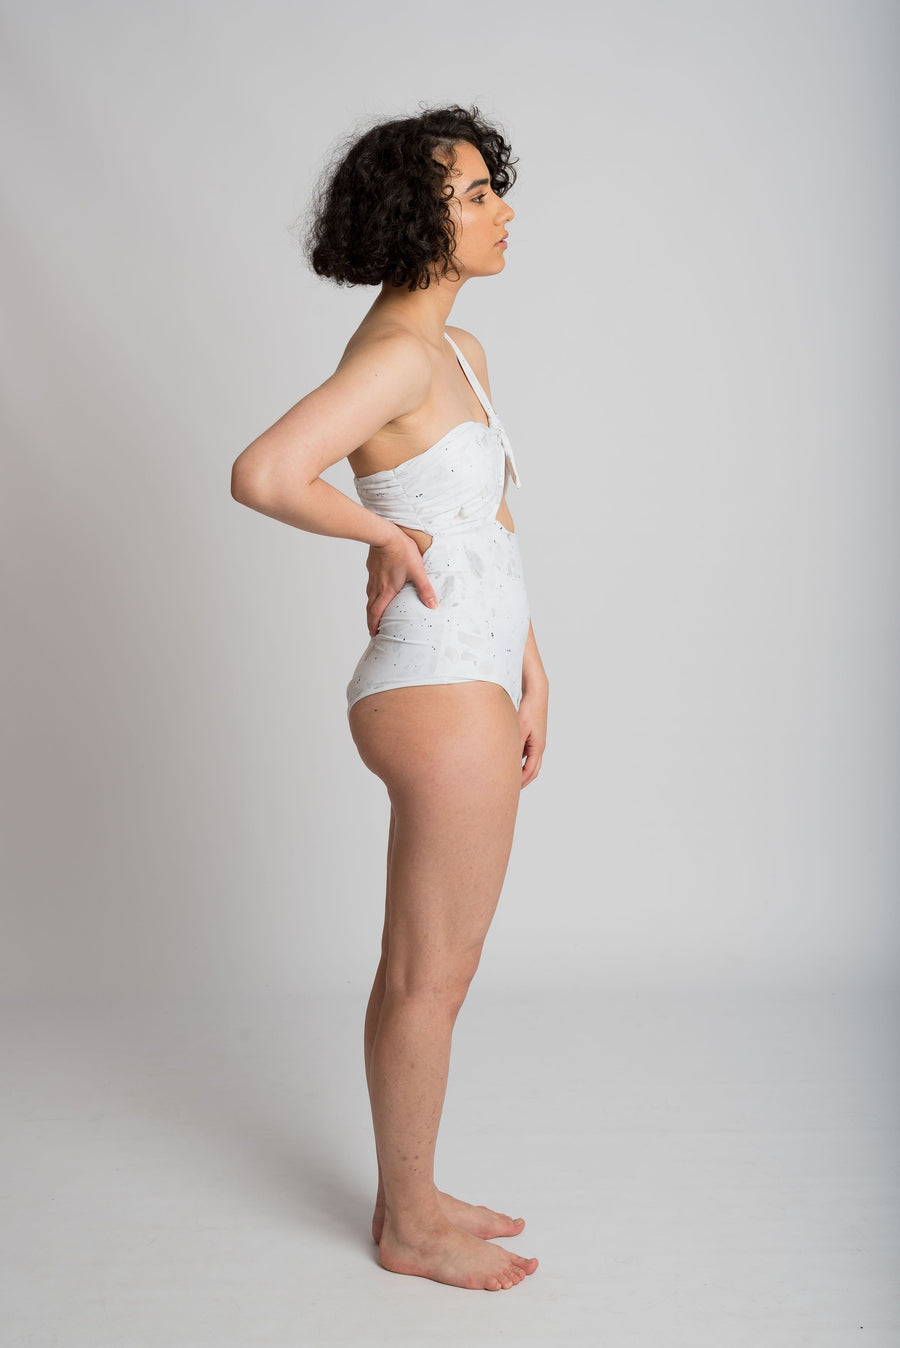 Ethical and sustainable swimwear for women xxs to plus size, recycled ECONYL one shoulder onepiece ethically made in Australia.